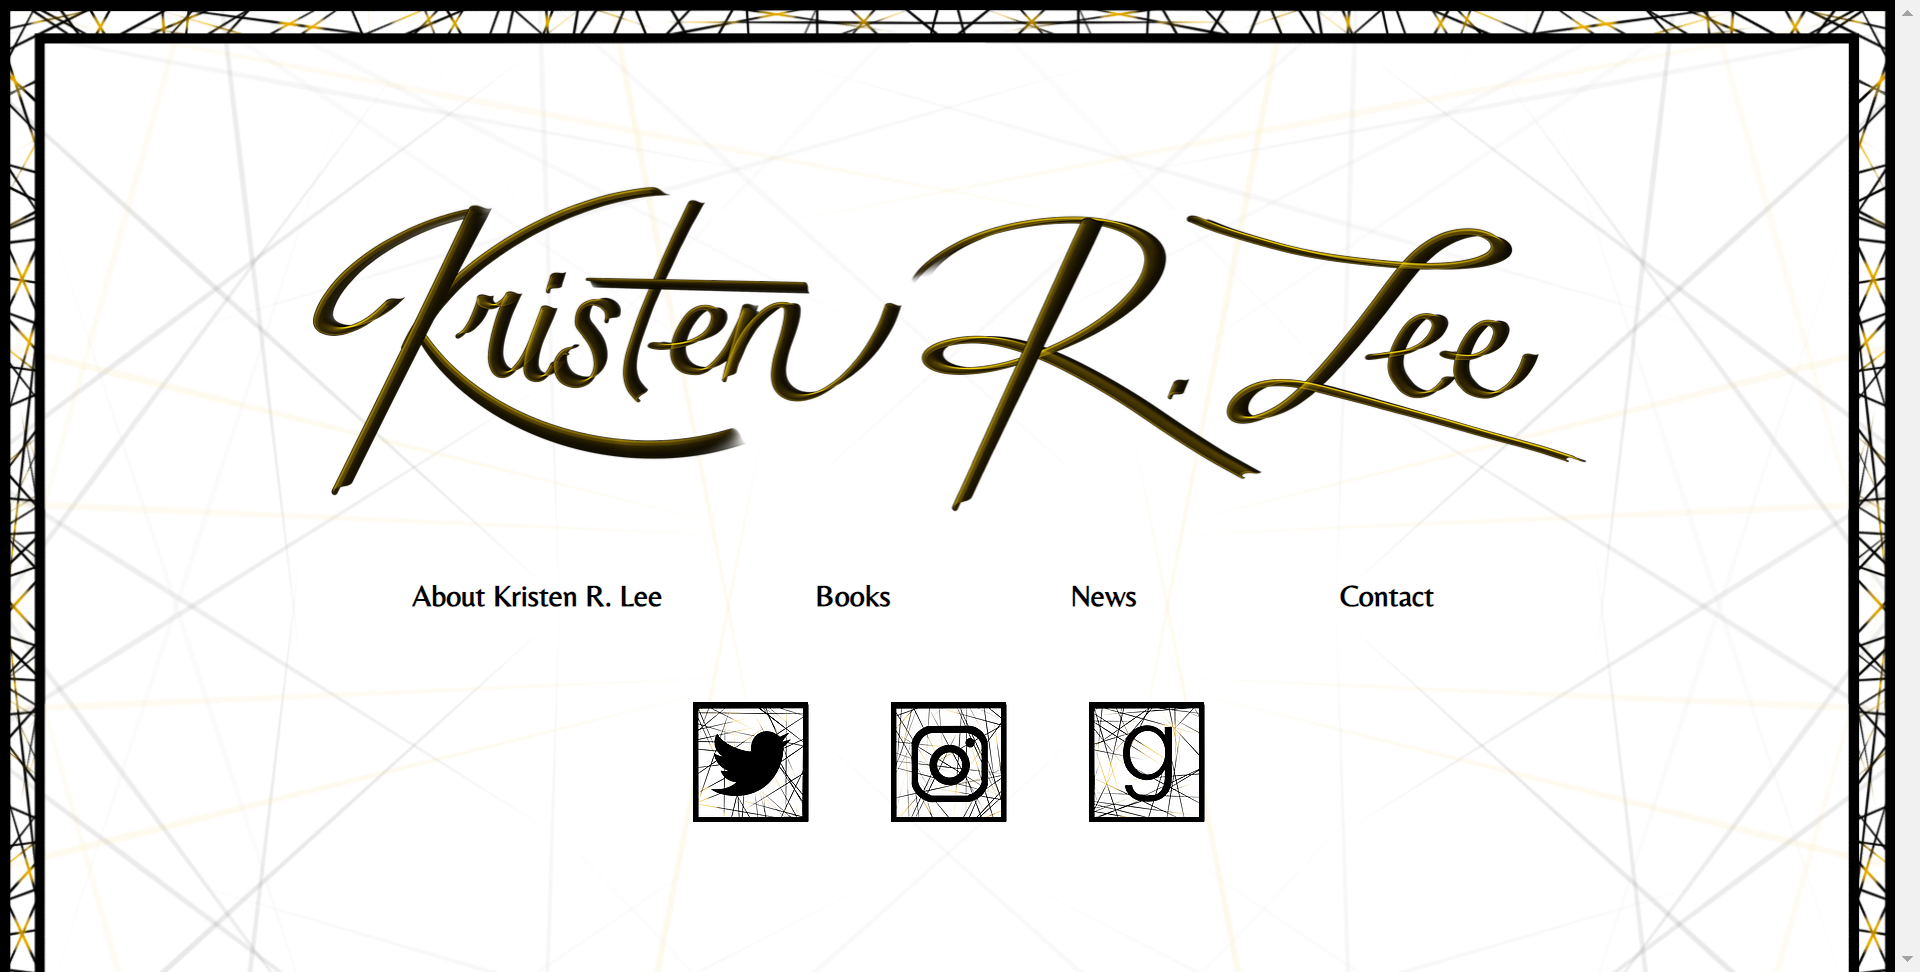 Kristen R. Lee Books